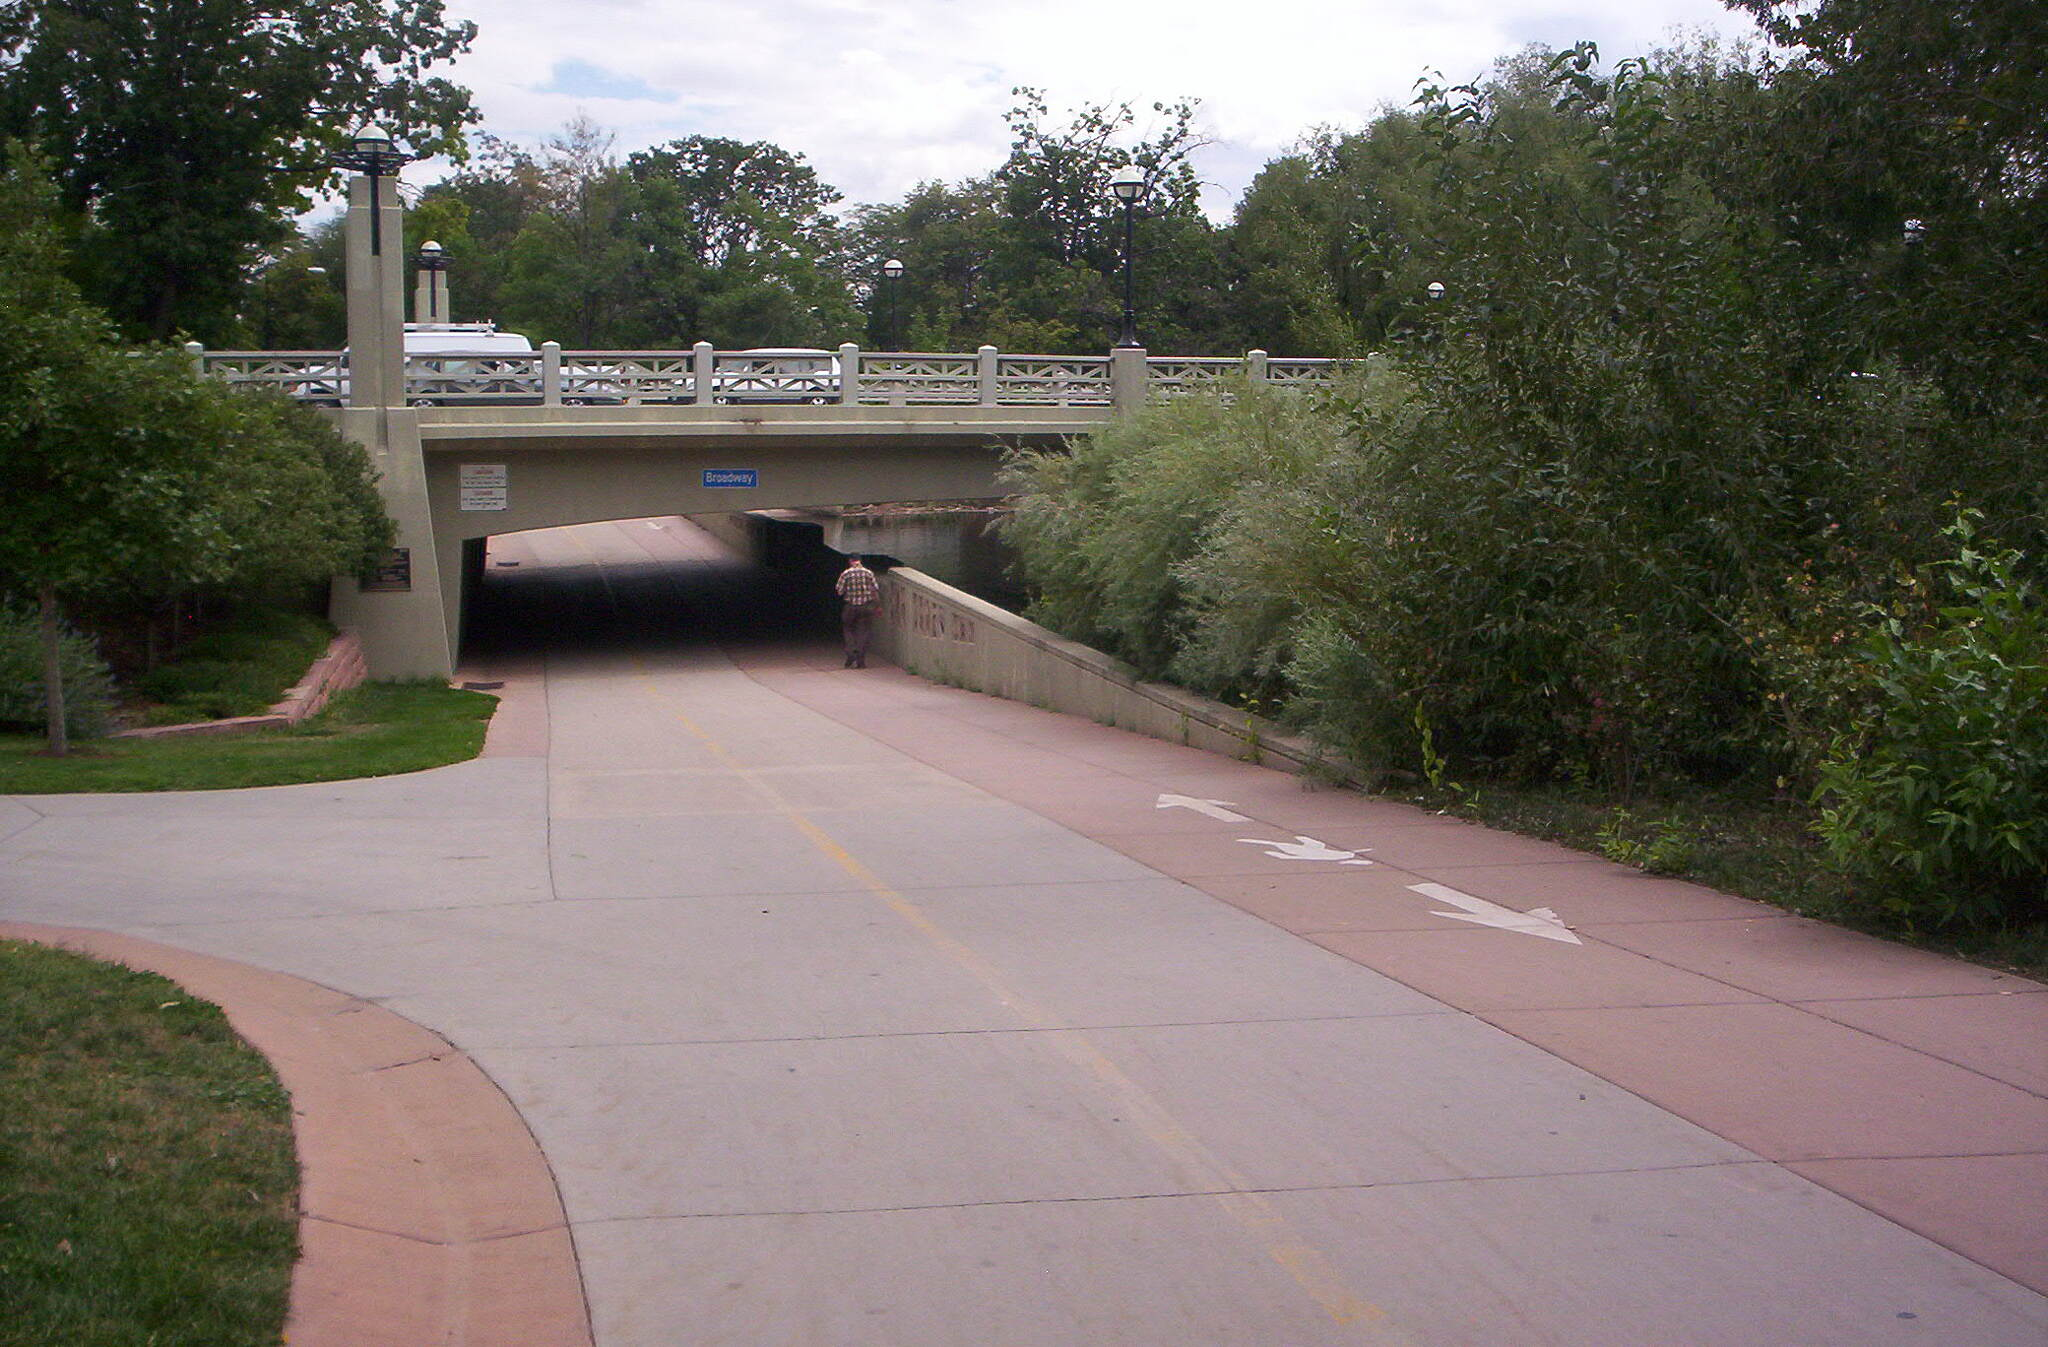 Boulder Creek Path Broadway Underpass at Broadway. As you can see, the path is wide with a separate lane for joggers. Boulder Creek is alongside the whole way. Even though it runs through the city, every crossroad has an underpass.